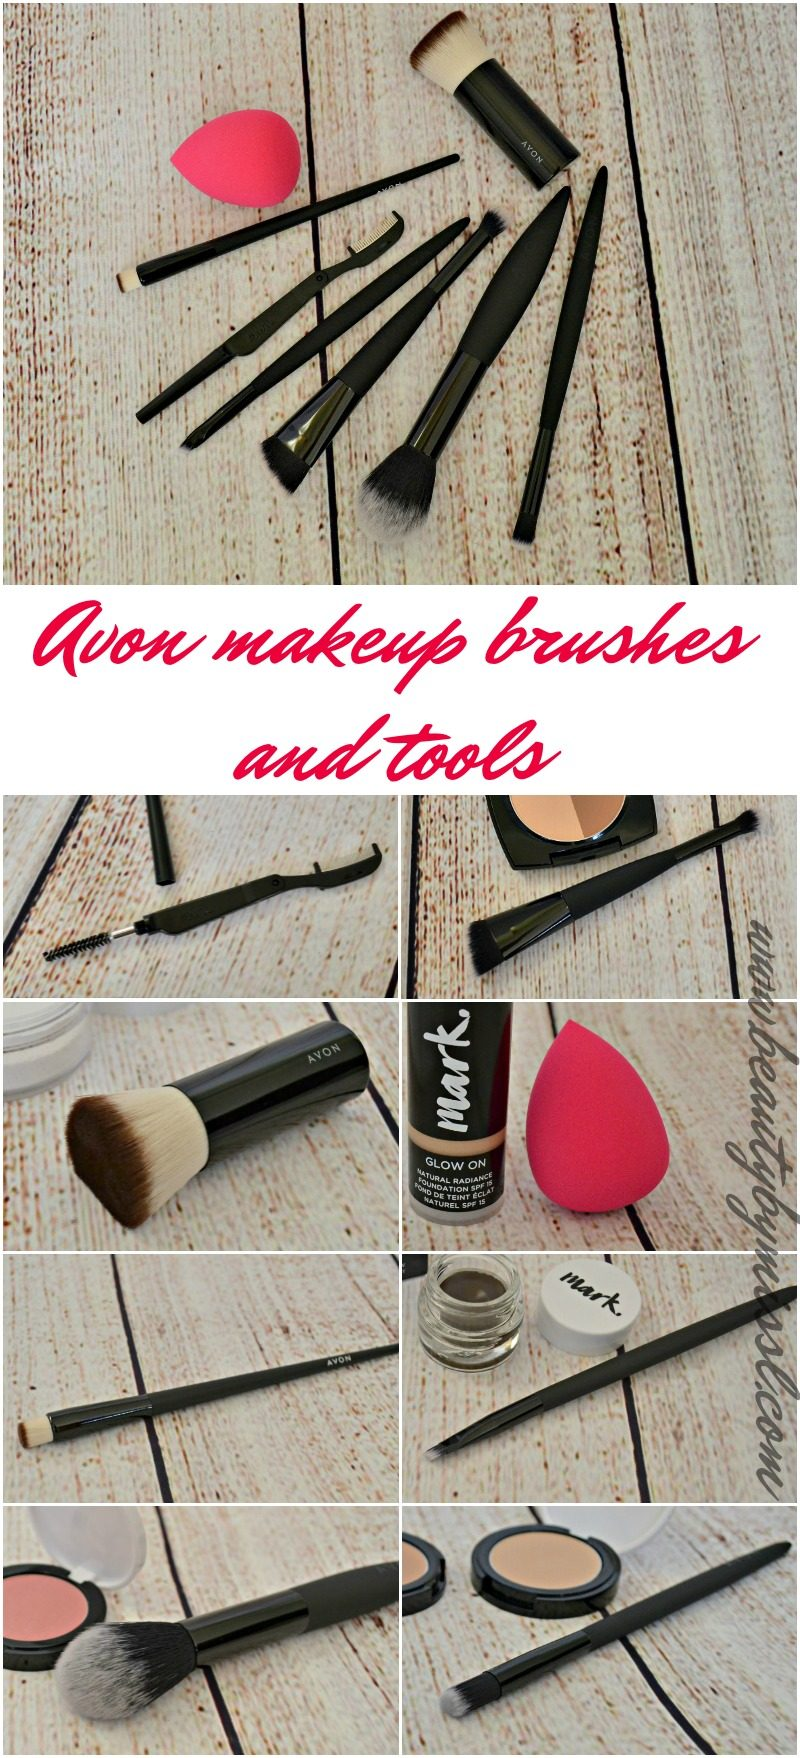 Avon makeup brushes and tools